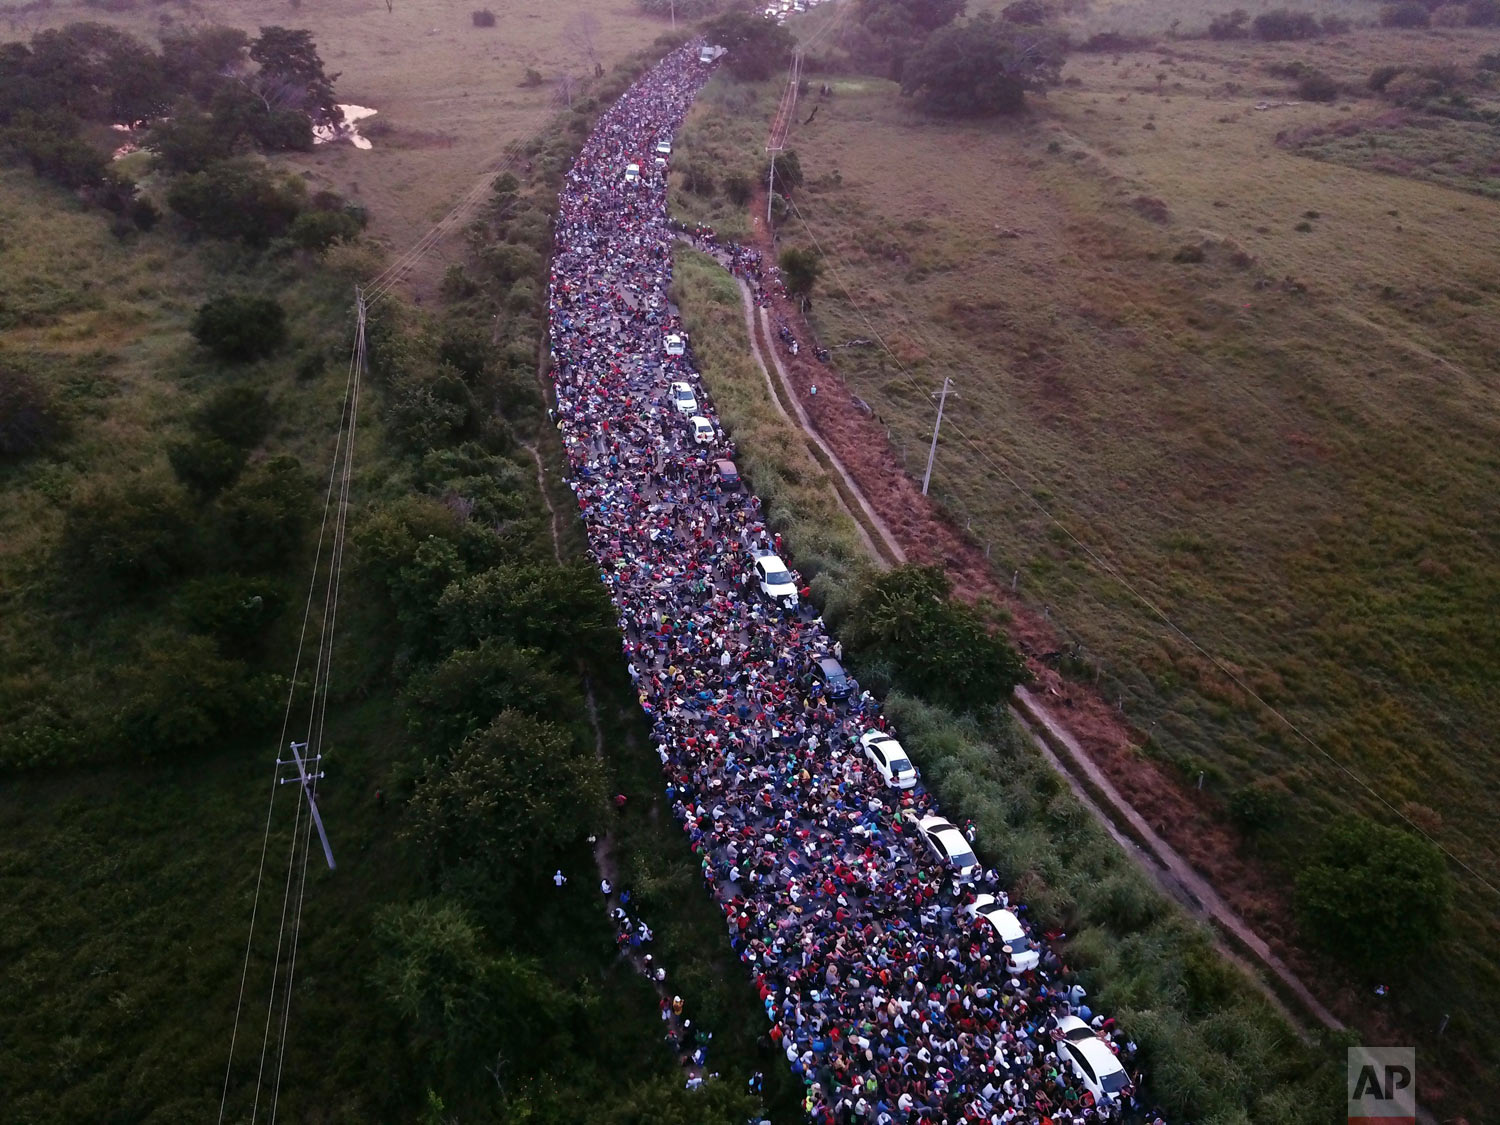 Members of a US-bound migrant caravan cross a bridge between the Mexican states of Chiapas and Oaxaca after federal police briefly blocked them outside the town of Arriaga, Saturday, Oct. 27, 2018. Hundreds of Mexican federal officers carrying plastic shields had blocked the caravan from advancing toward the United States, after several thousand of the migrants turned down the chance to apply for refugee status and obtain a Mexican offer of benefits. (AP Photo/Rodrigo Abd)